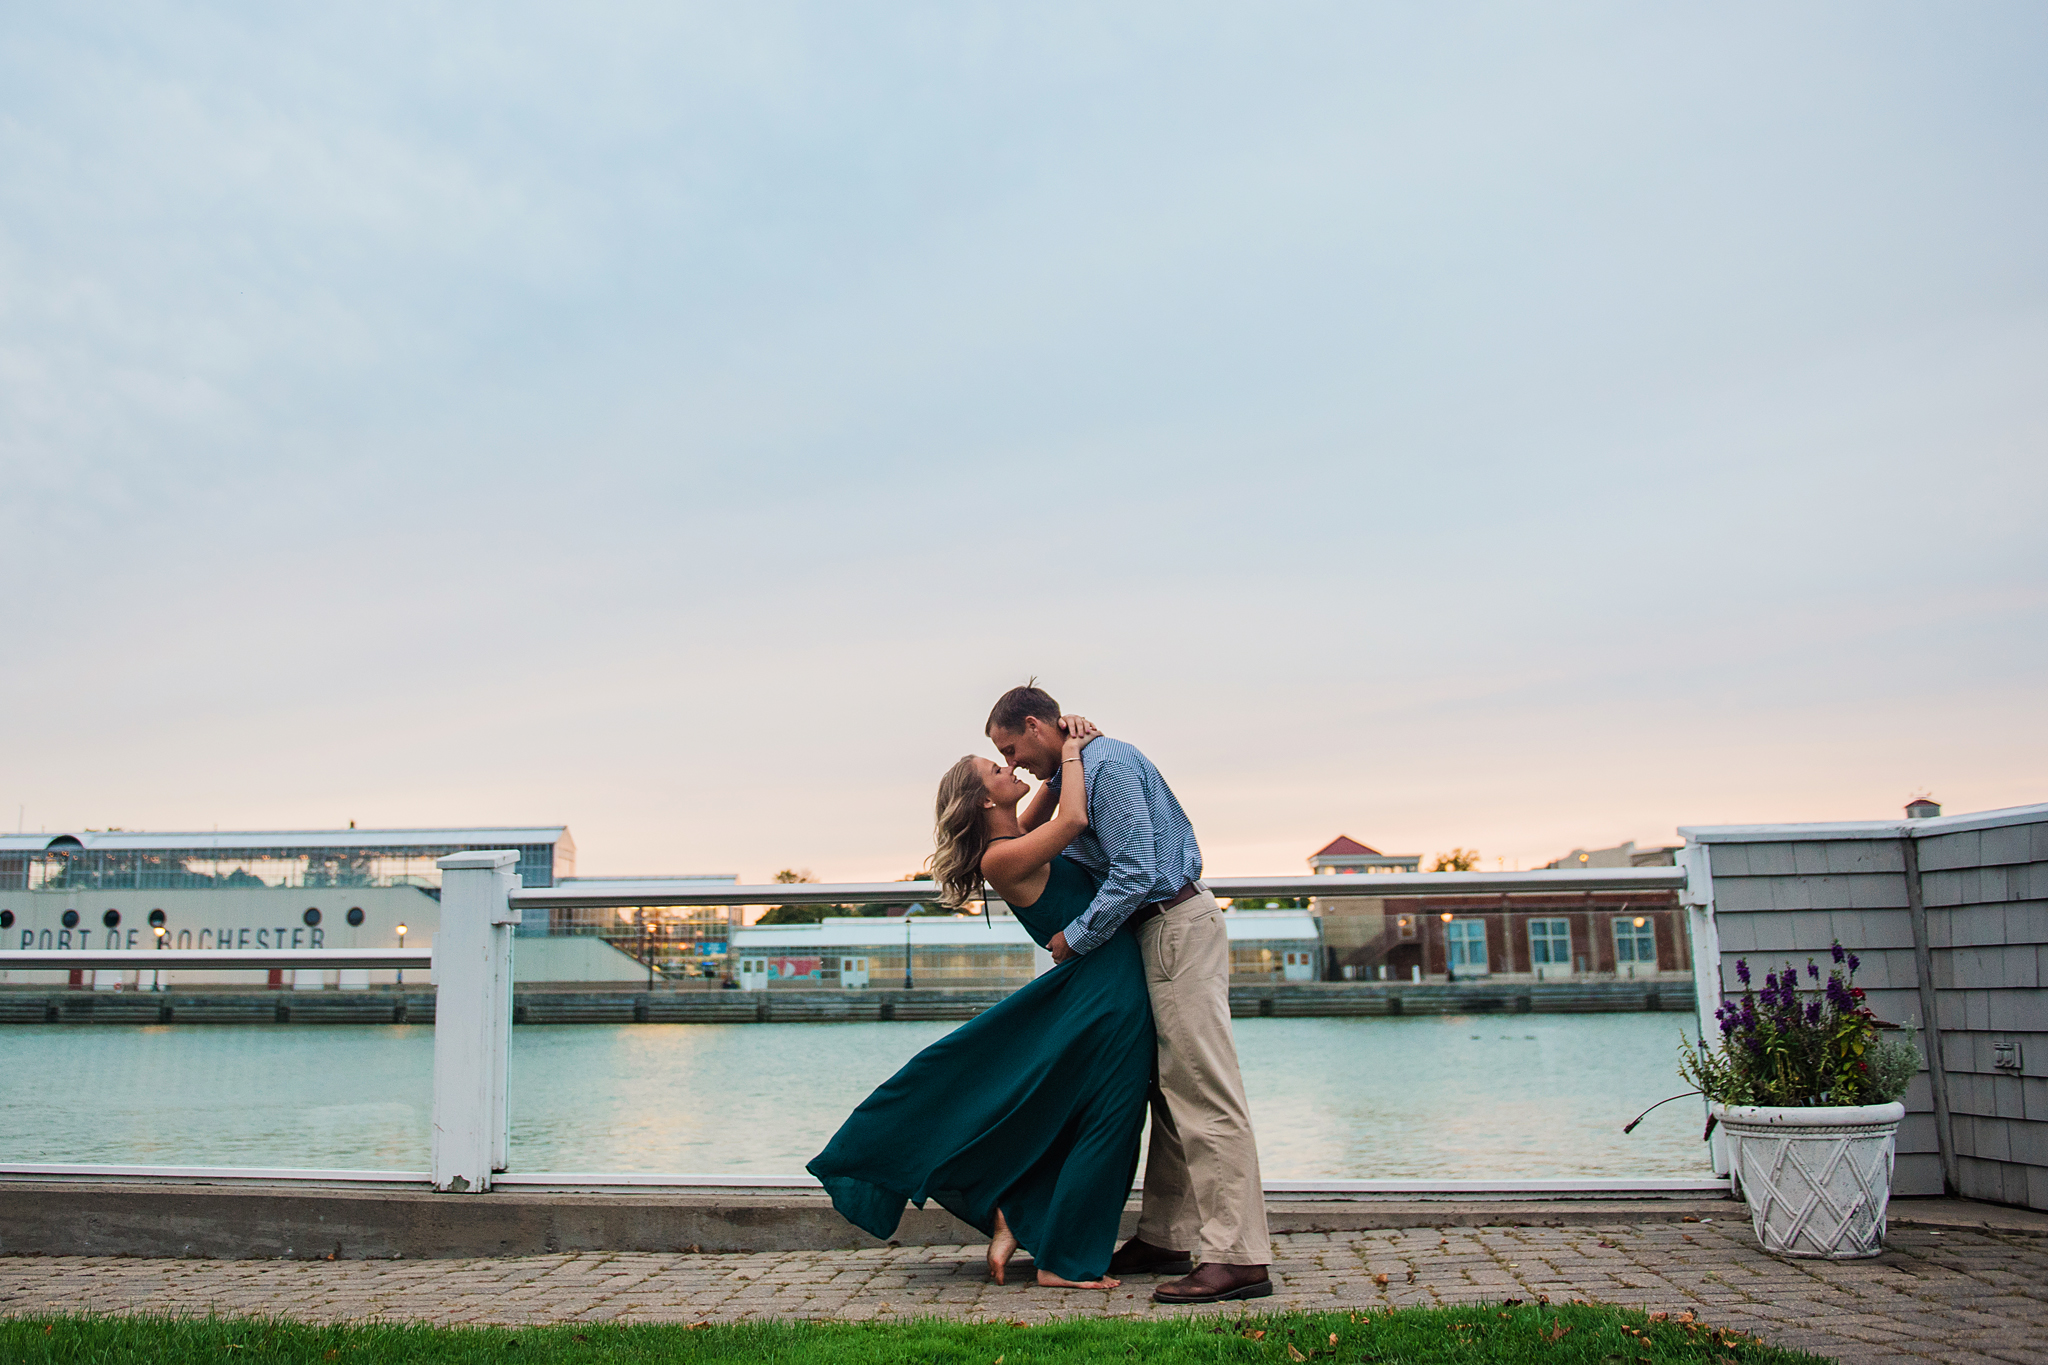 George_Eastman_House_Rochester_Yacht_Club_Rochester_Engagement_Session_JILL_STUDIO_Rochester_NY_Photographer_DSC_8267.jpg